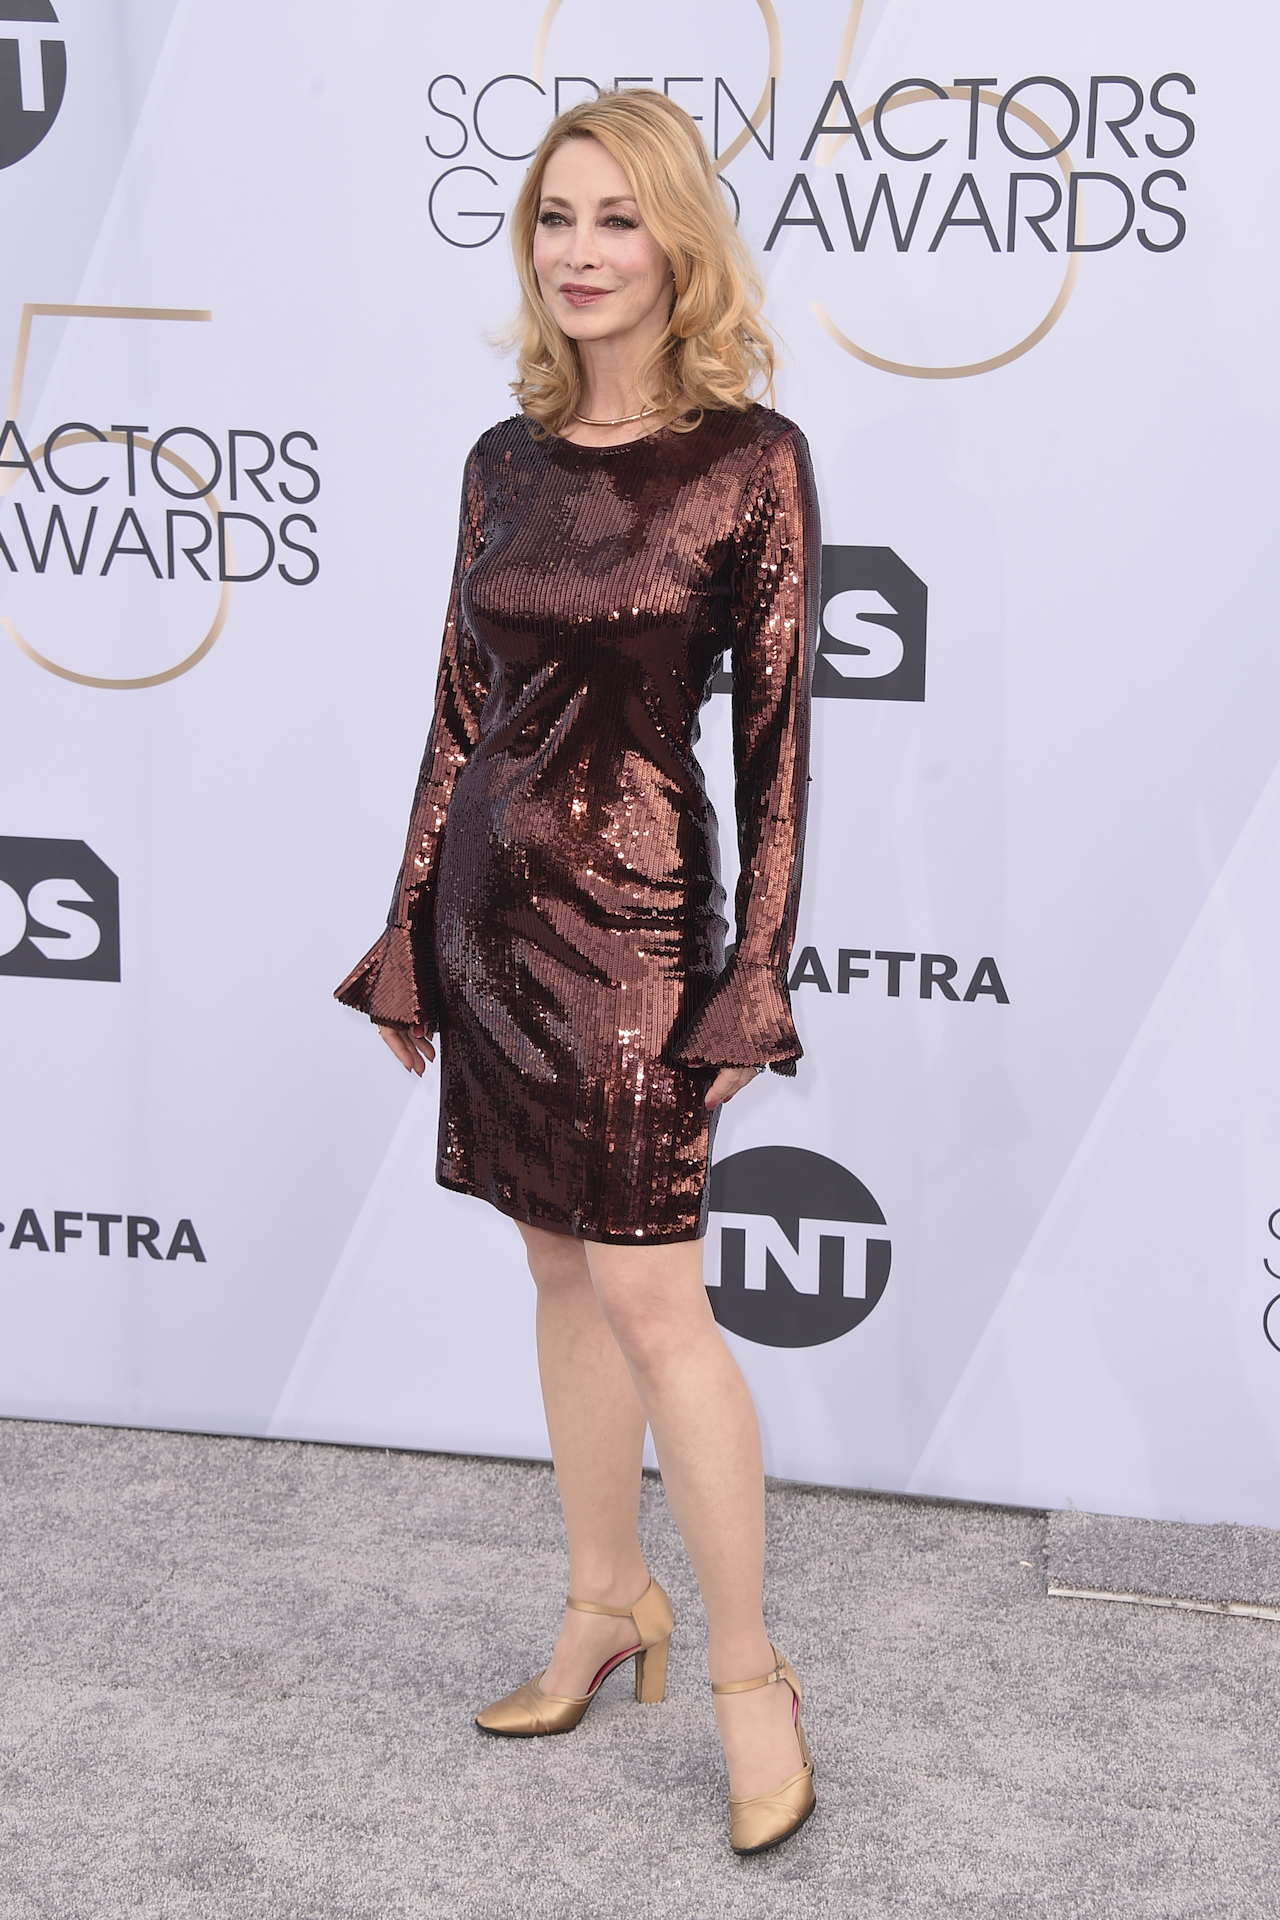 <div class='meta'><div class='origin-logo' data-origin='AP'></div><span class='caption-text' data-credit='Jordan Strauss/Invision/AP'>Sharon Lawrence arrives at the 25th annual Screen Actors Guild Awards at the Shrine Auditorium & Expo Hall on Sunday, Jan. 27, 2019, in Los Angeles.</span></div>